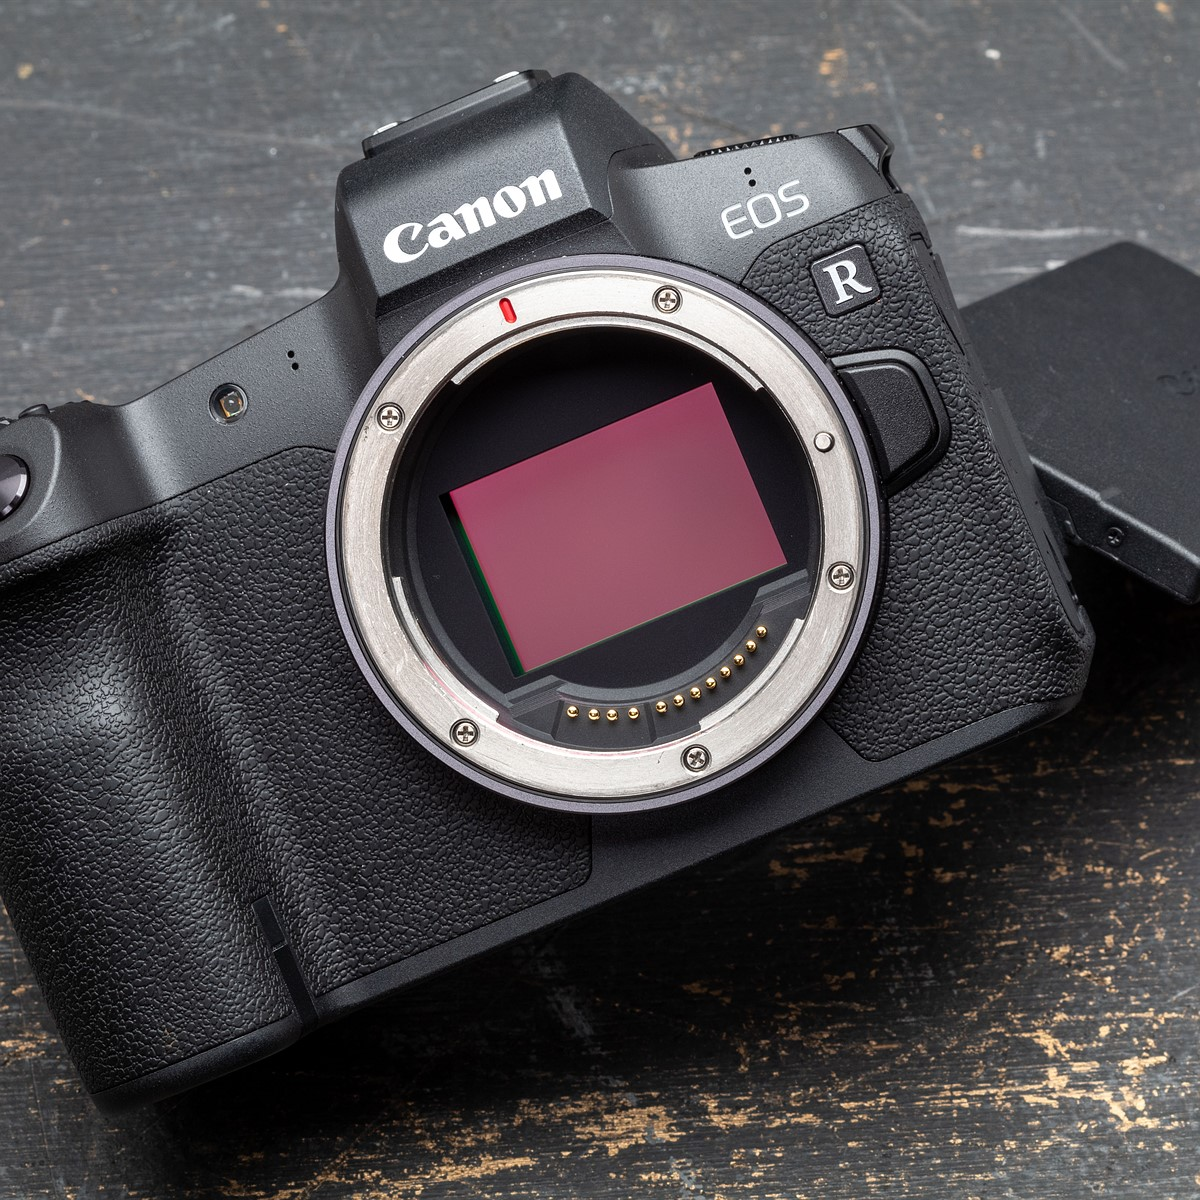 Five ways the Canon EOS R could be improved (hint: it's all about